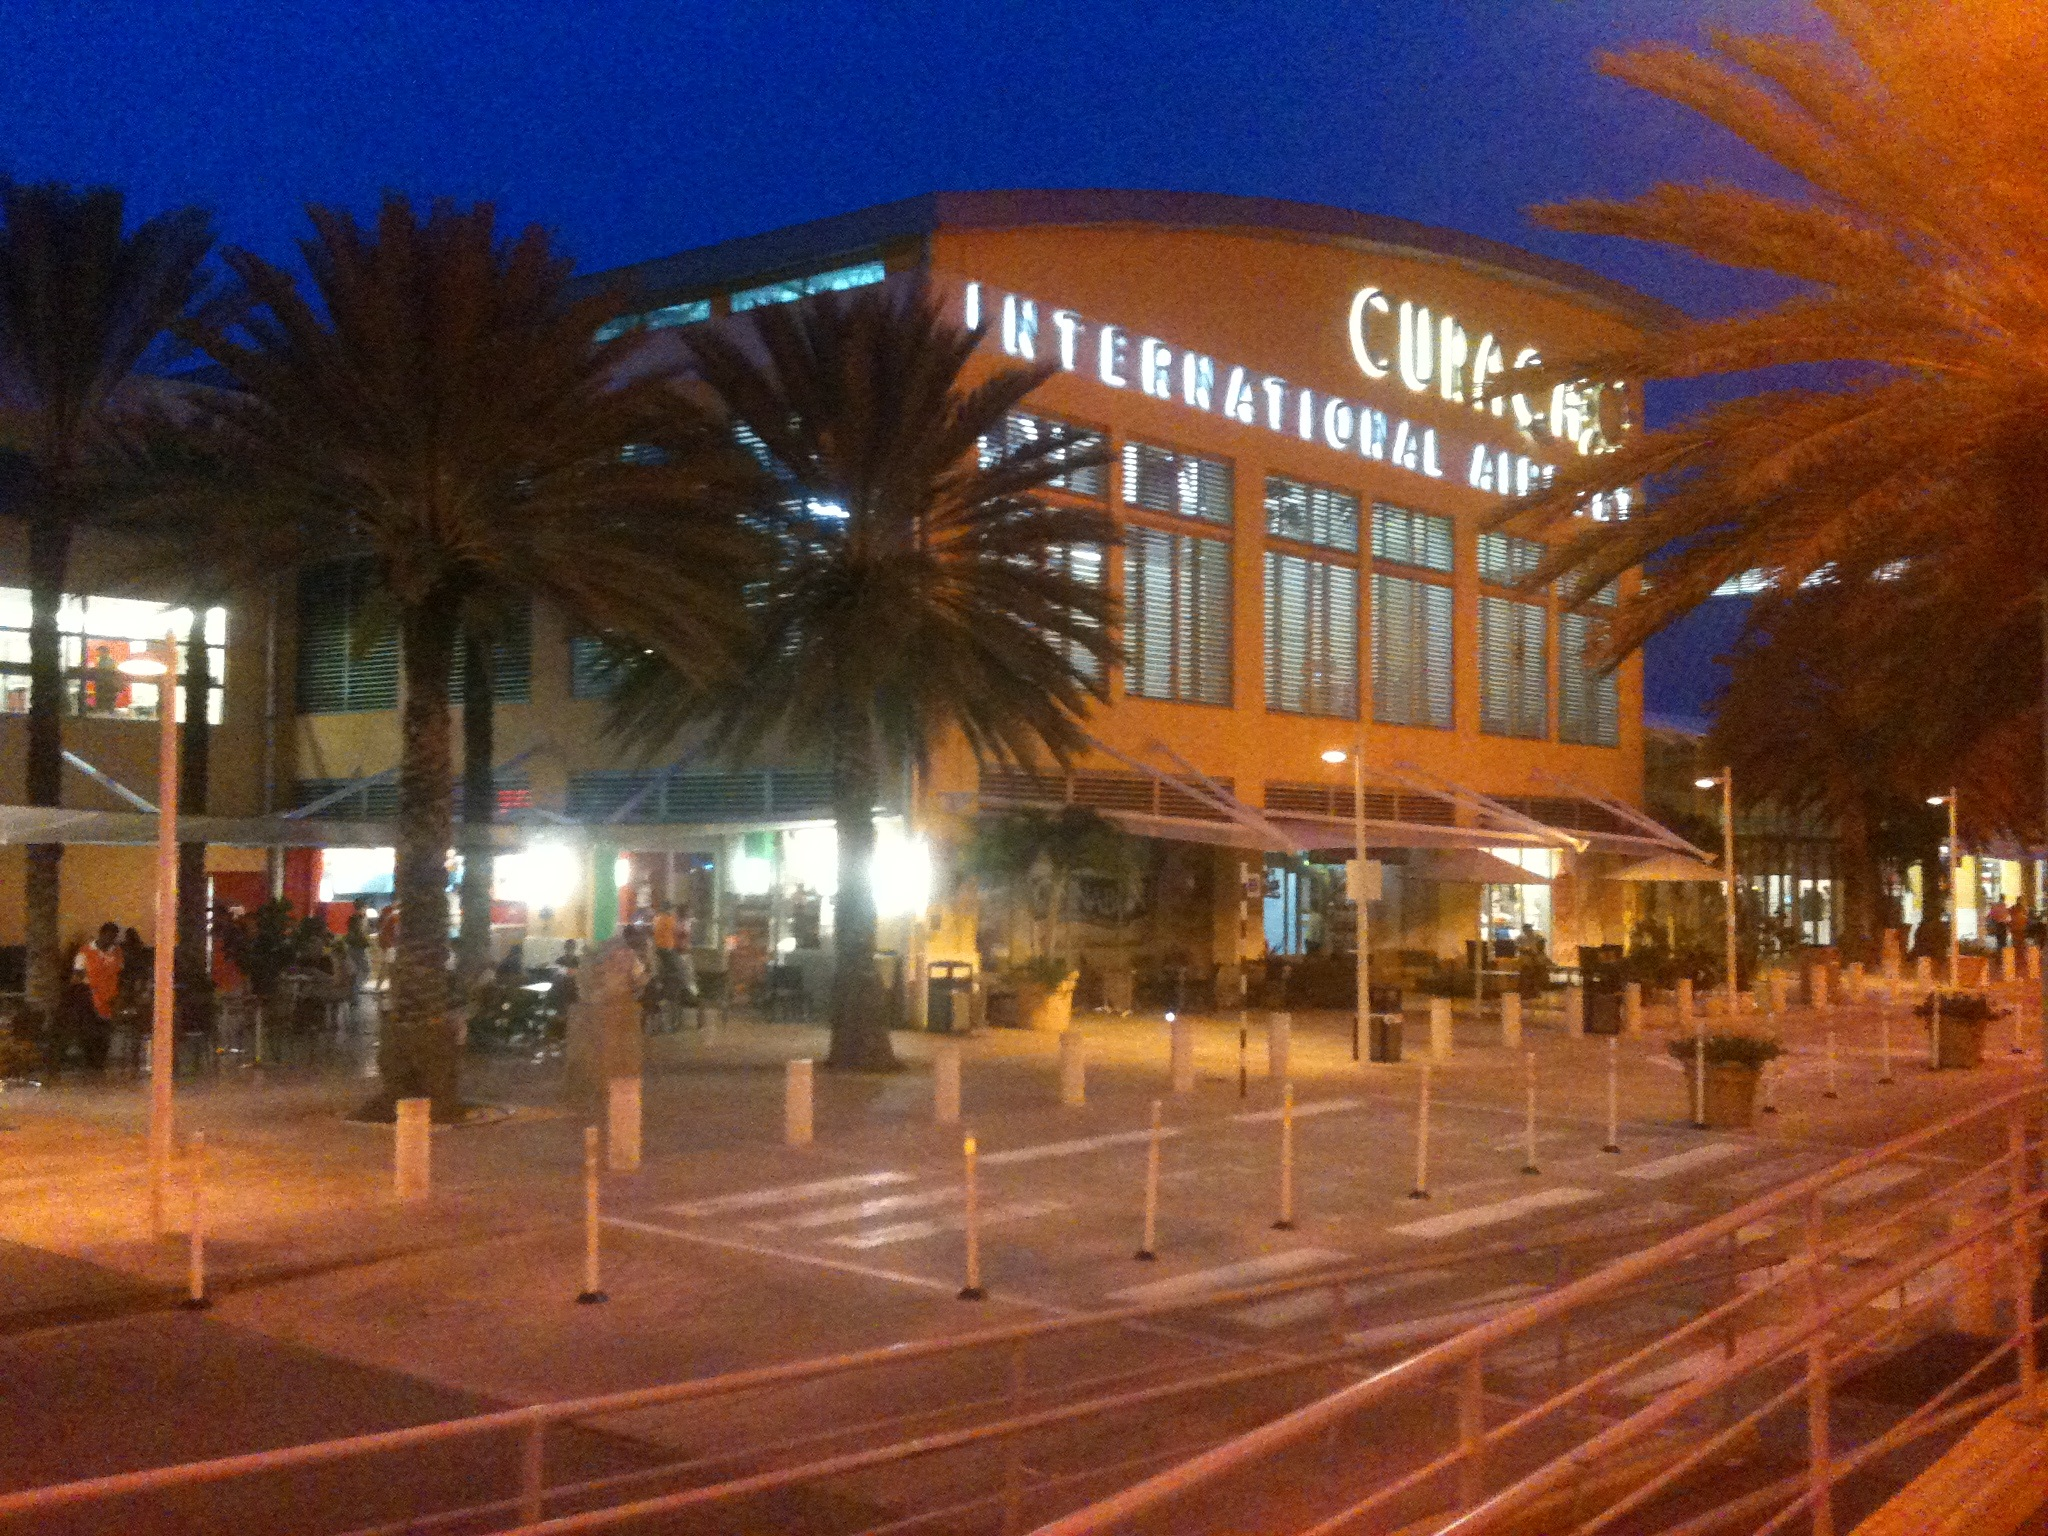 Curacao International Airport